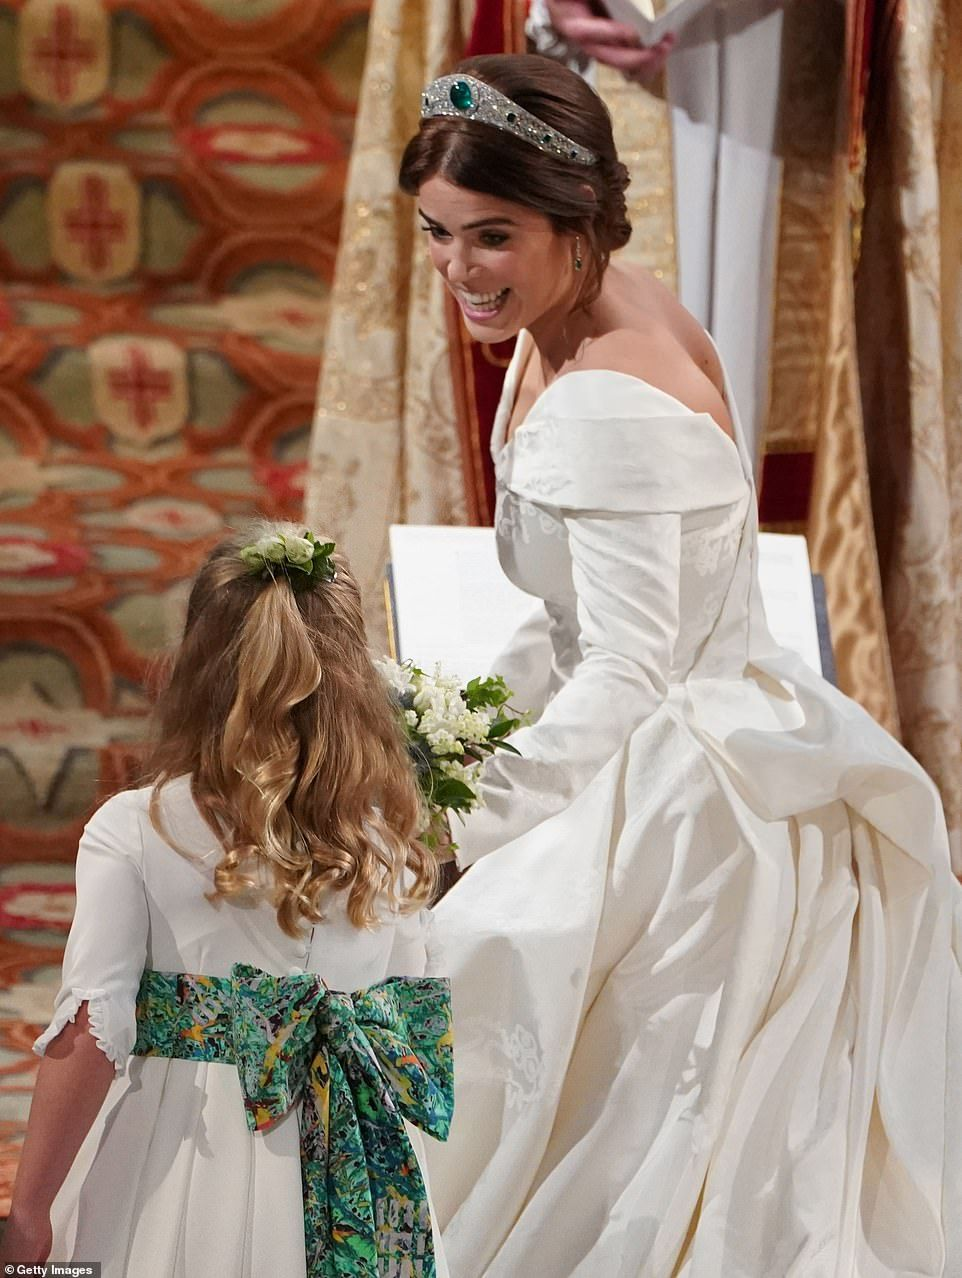 Beautiful bride Princess Eugenie marries Jack Brooksbank